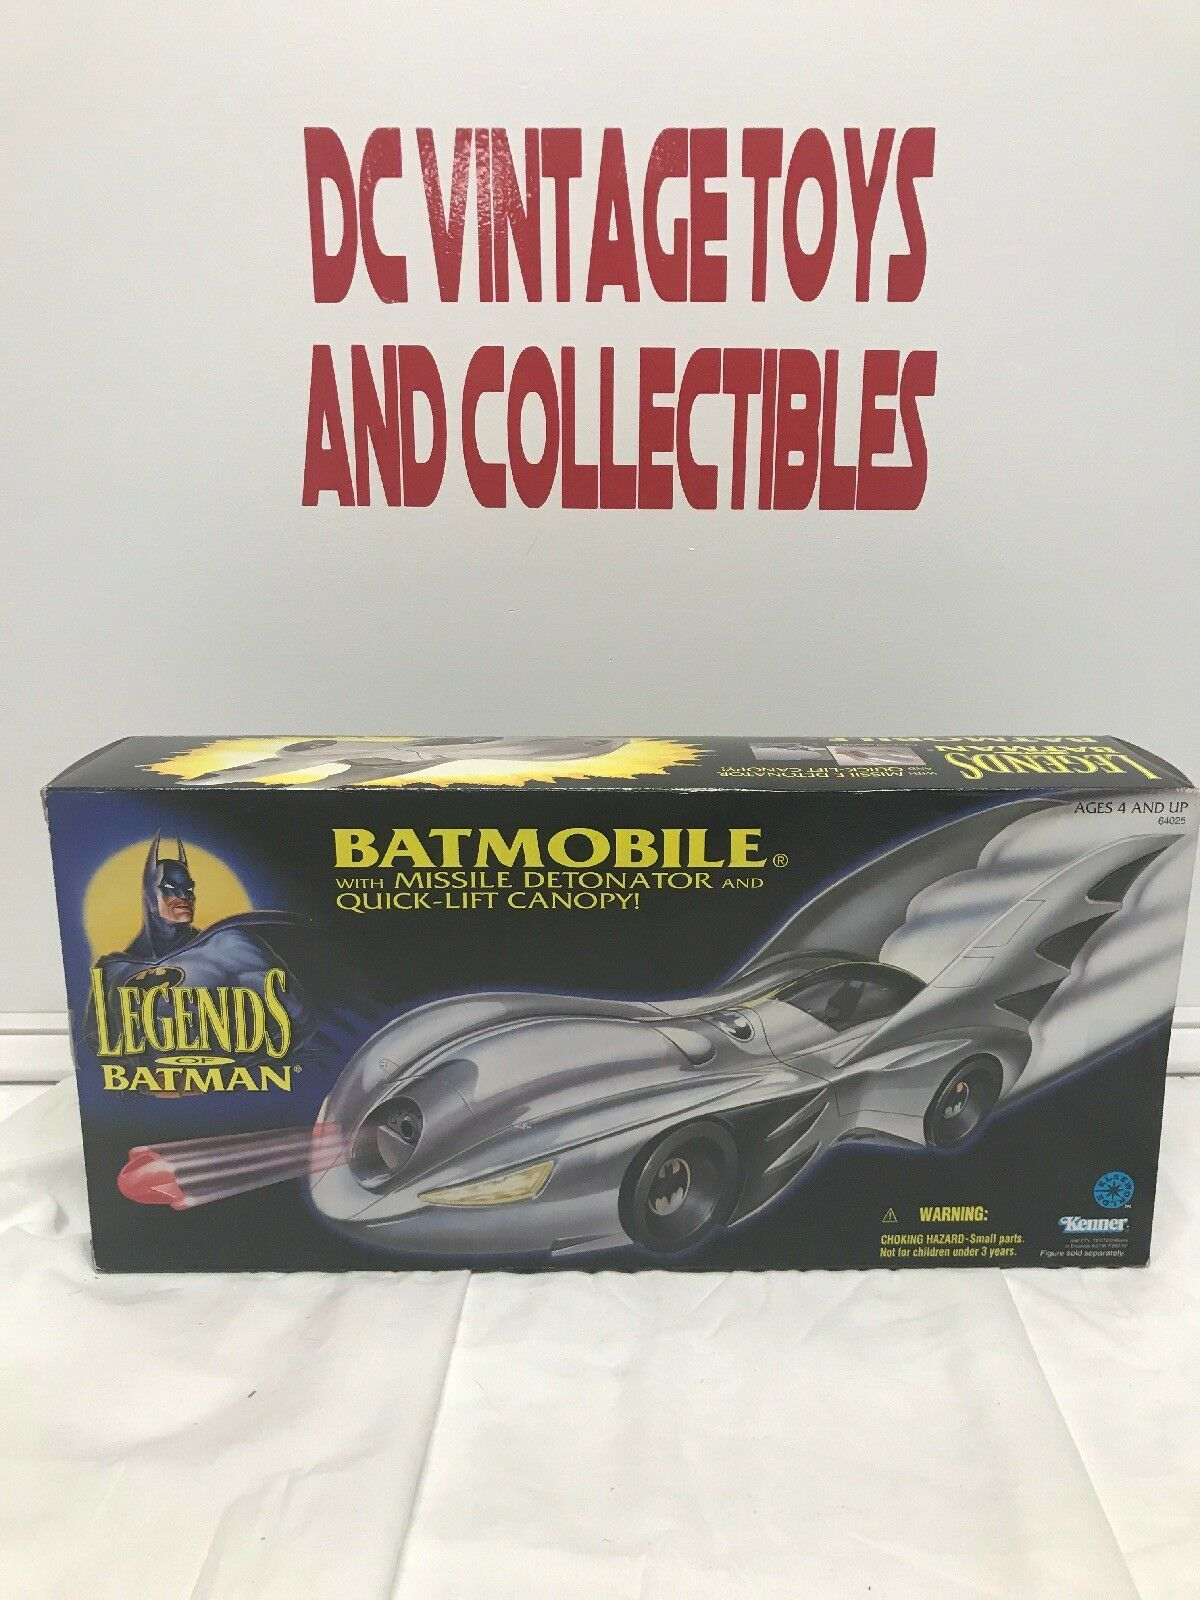 Bathomme Legends of Bathomme, Batmobile avec Bathomme  figurekenner, 1994 – FACTORY SEALED  aucune hésitation! achetez maintenant!